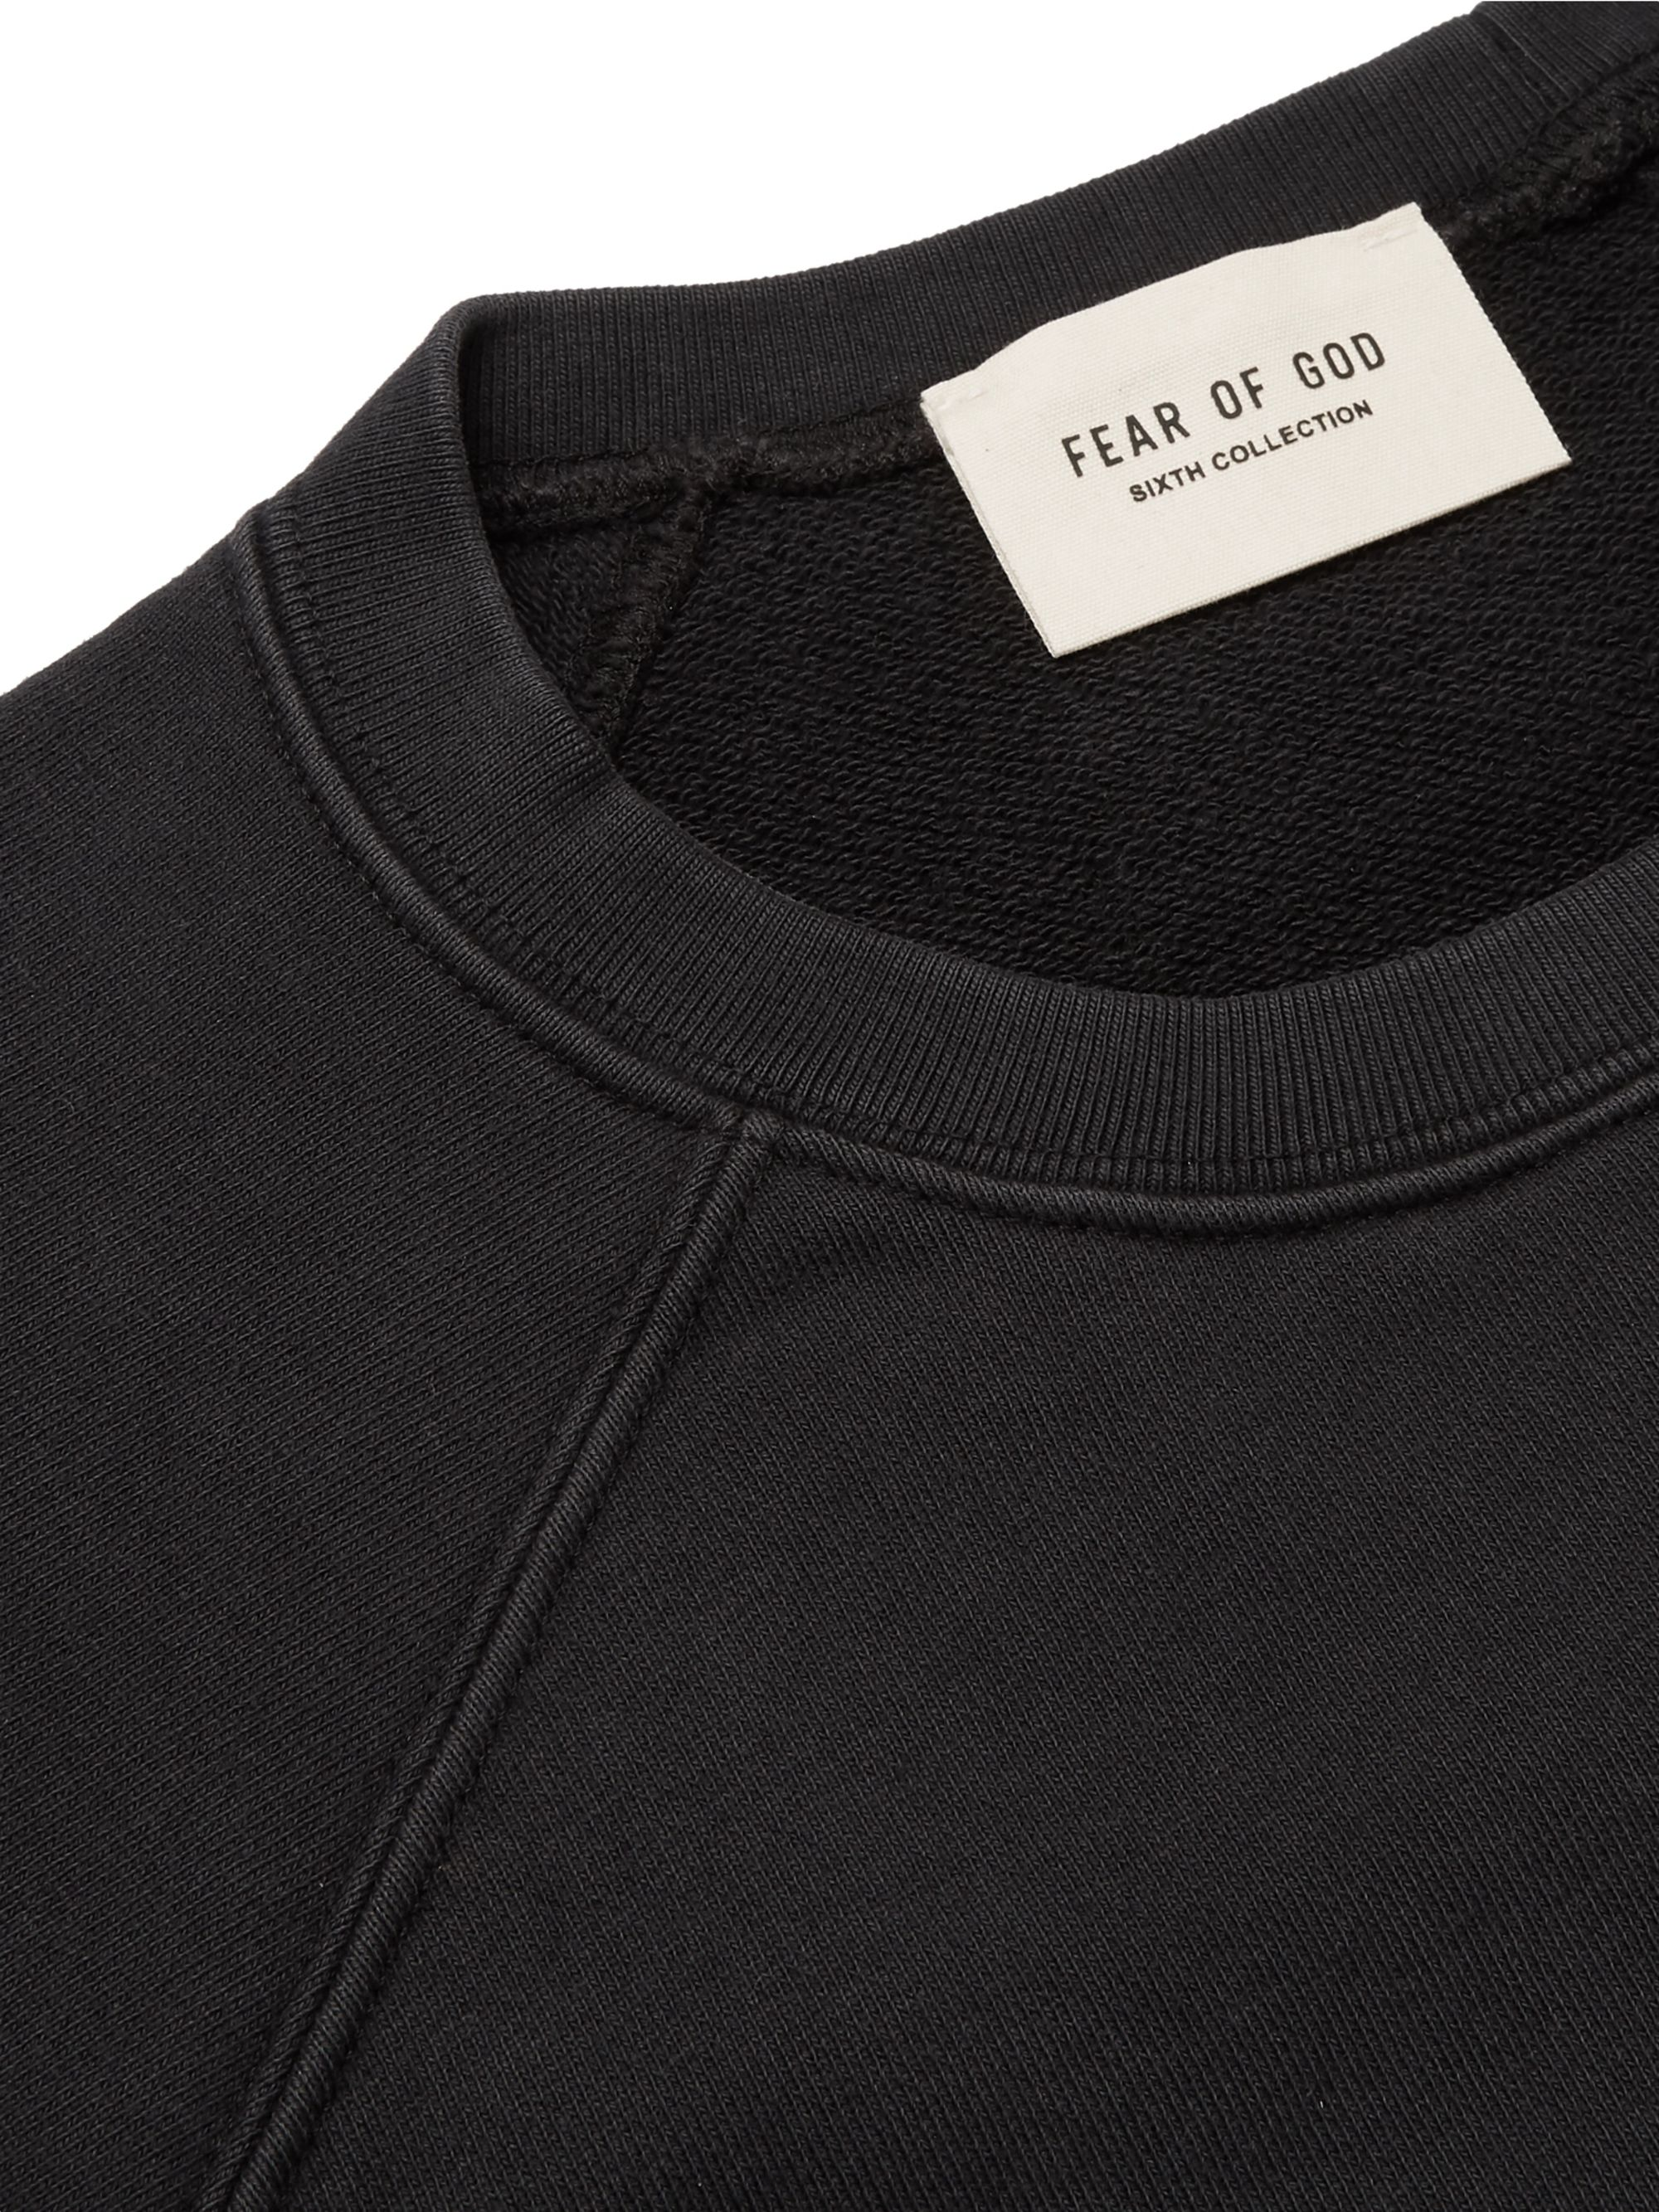 Fear of God Oversized Loopback Cotton-Jersey Sweatshirt